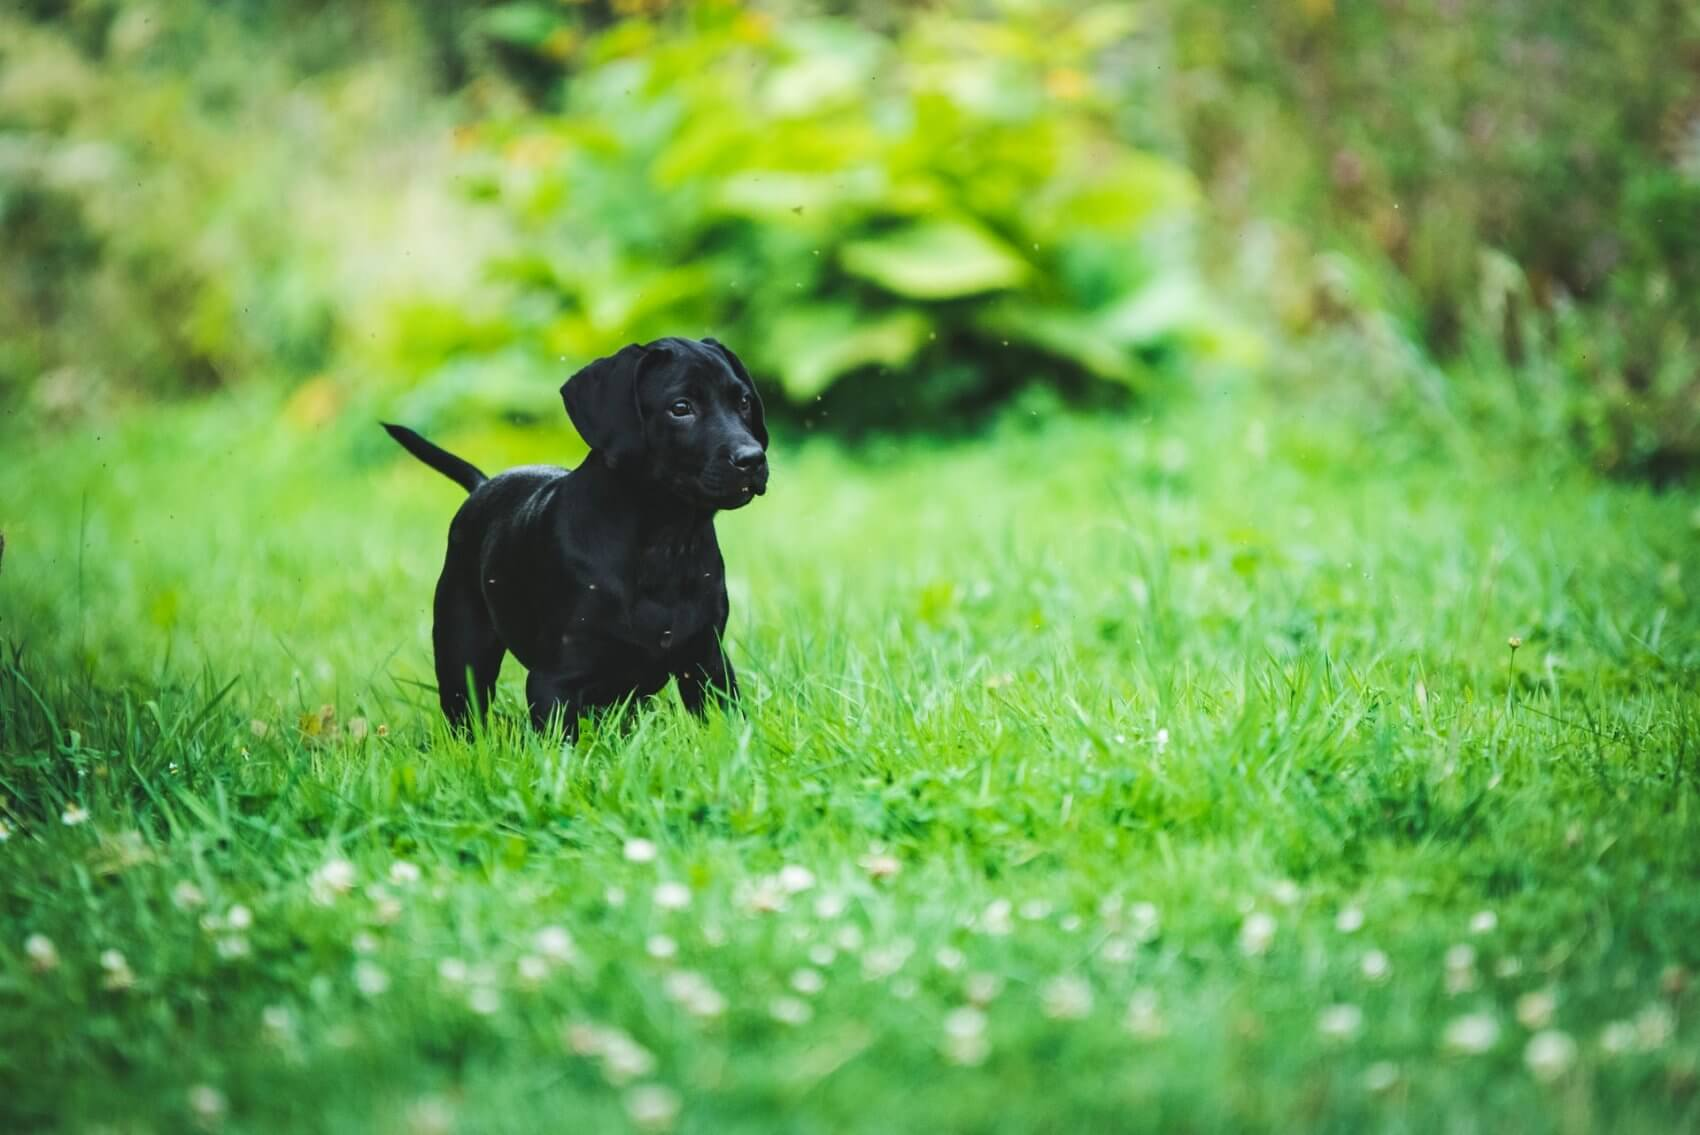 Small Black Puppy on Grass